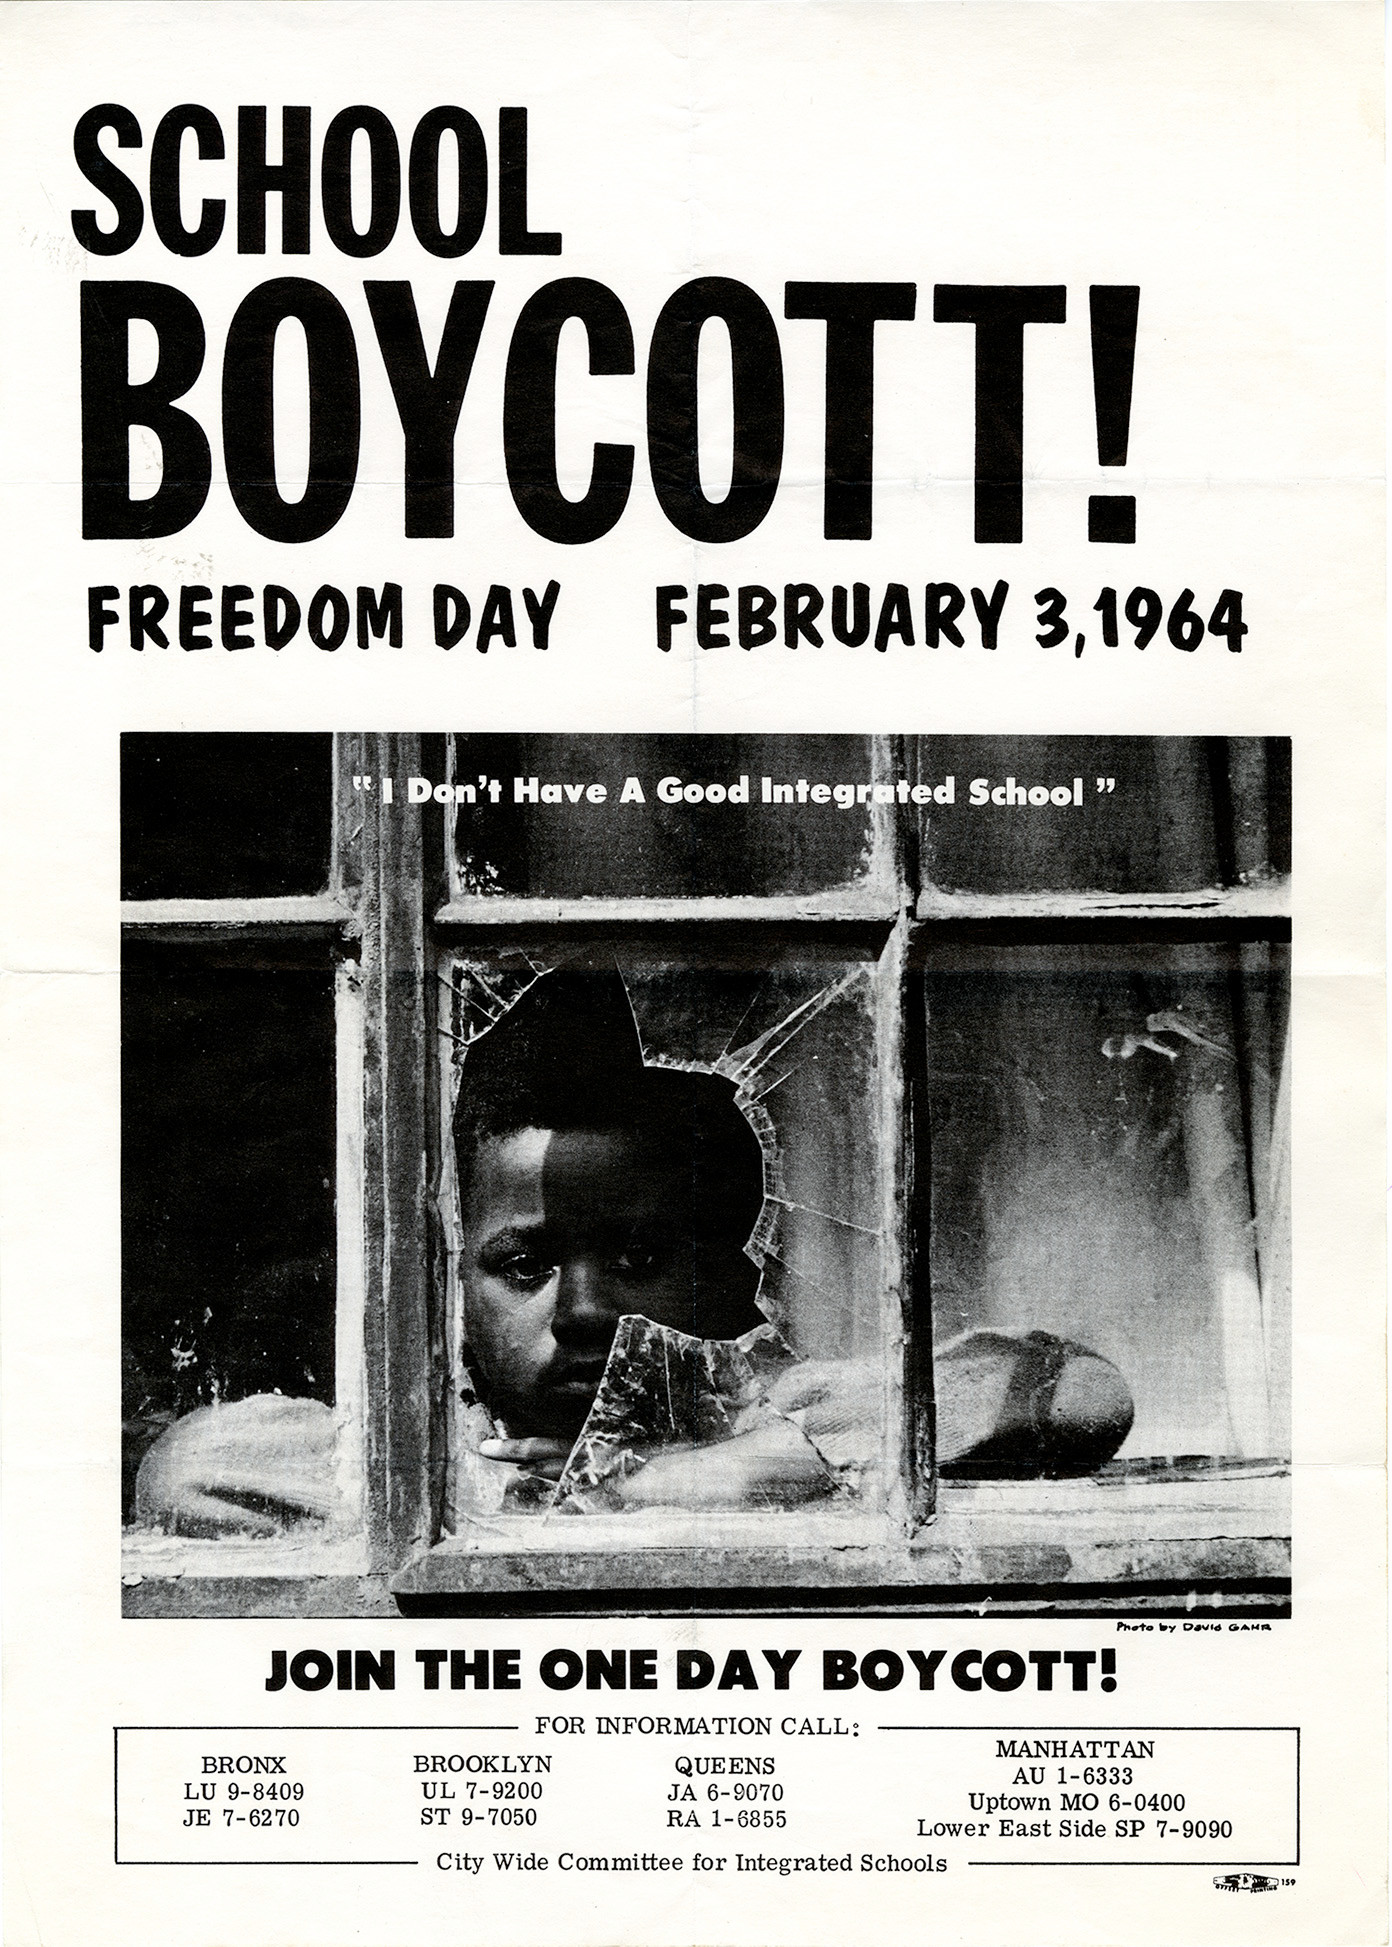 A flyer for the boycott against school segregation.